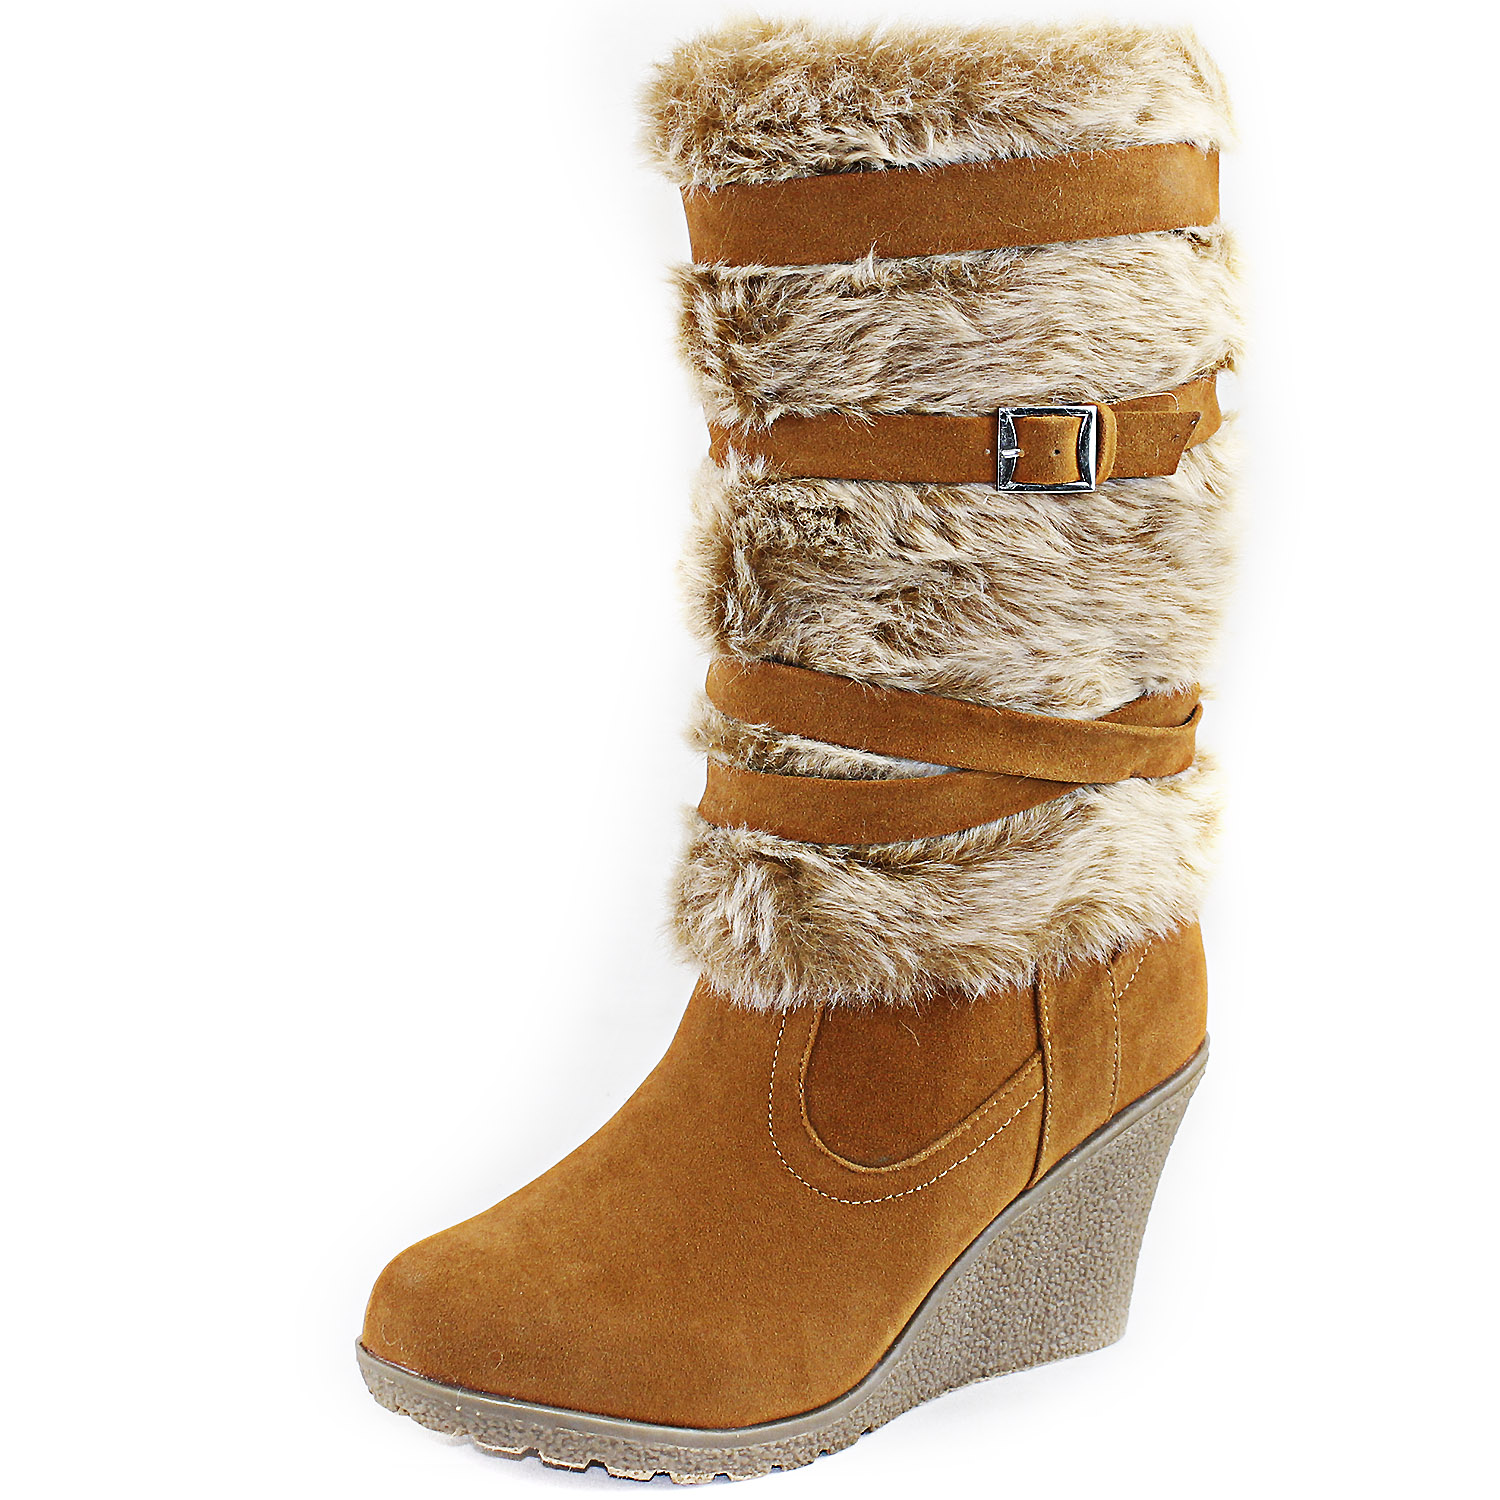 Tan Vegan Faux Fur Boots High Wedge Heel Platform Zipper